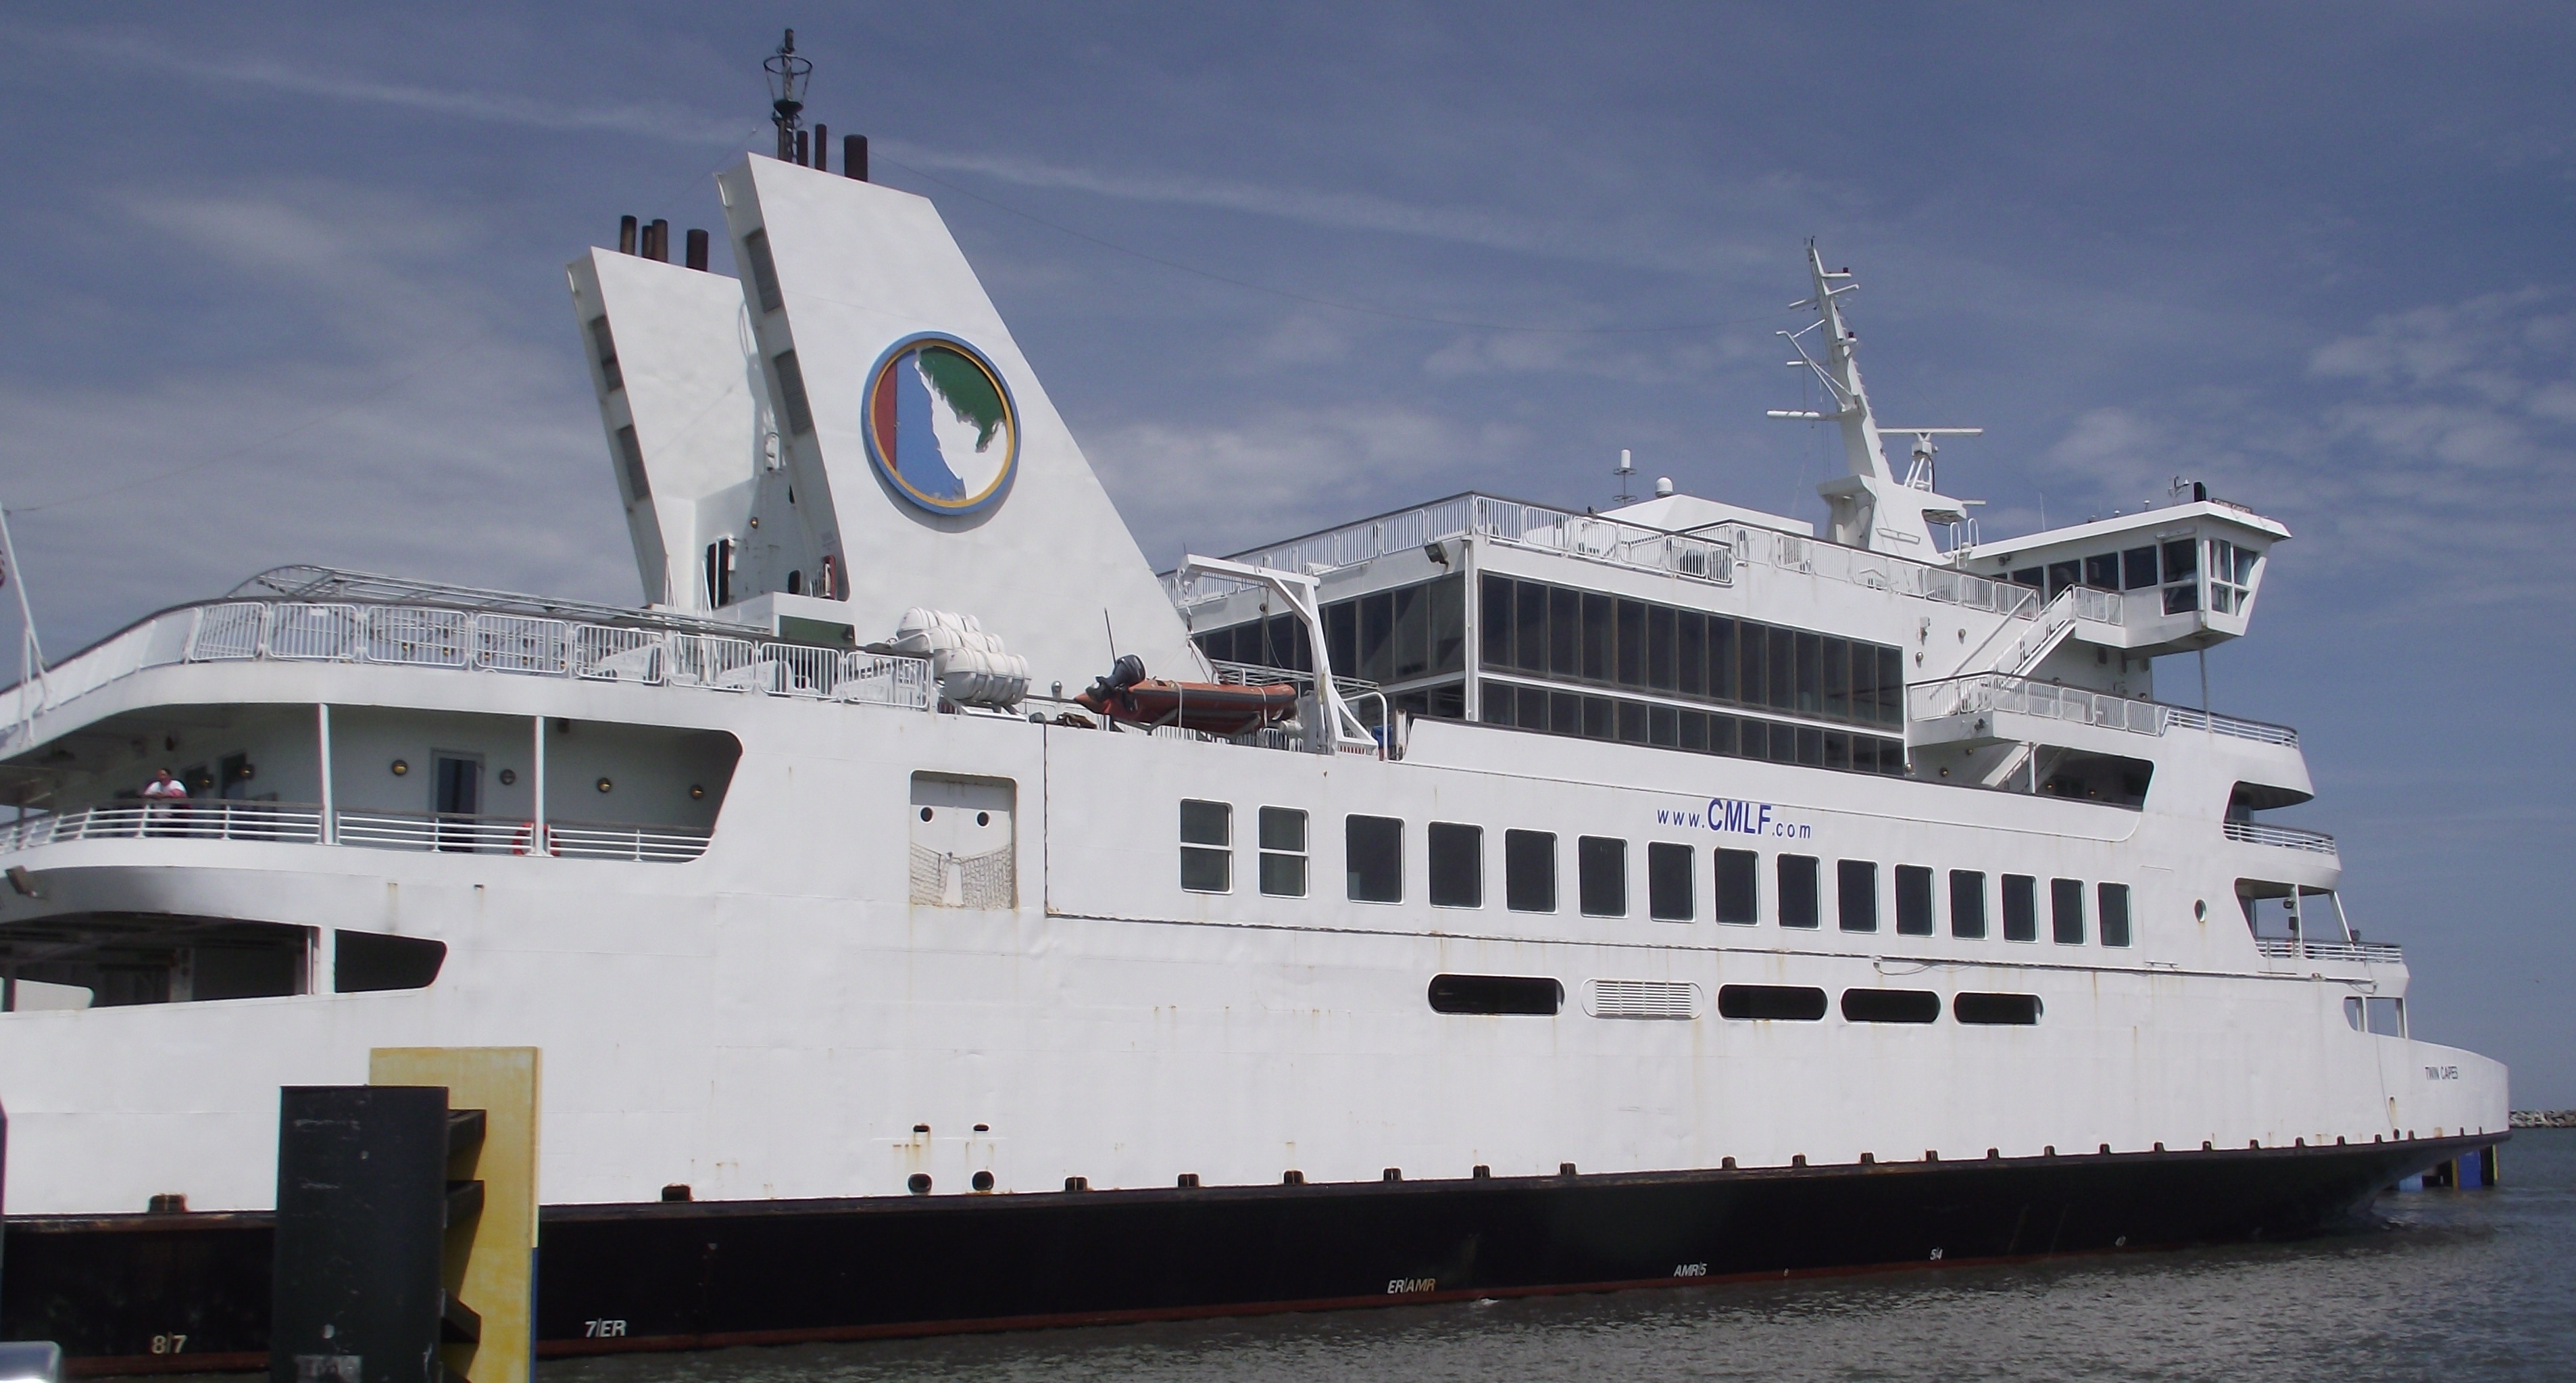 cape-may-lewes-ferry